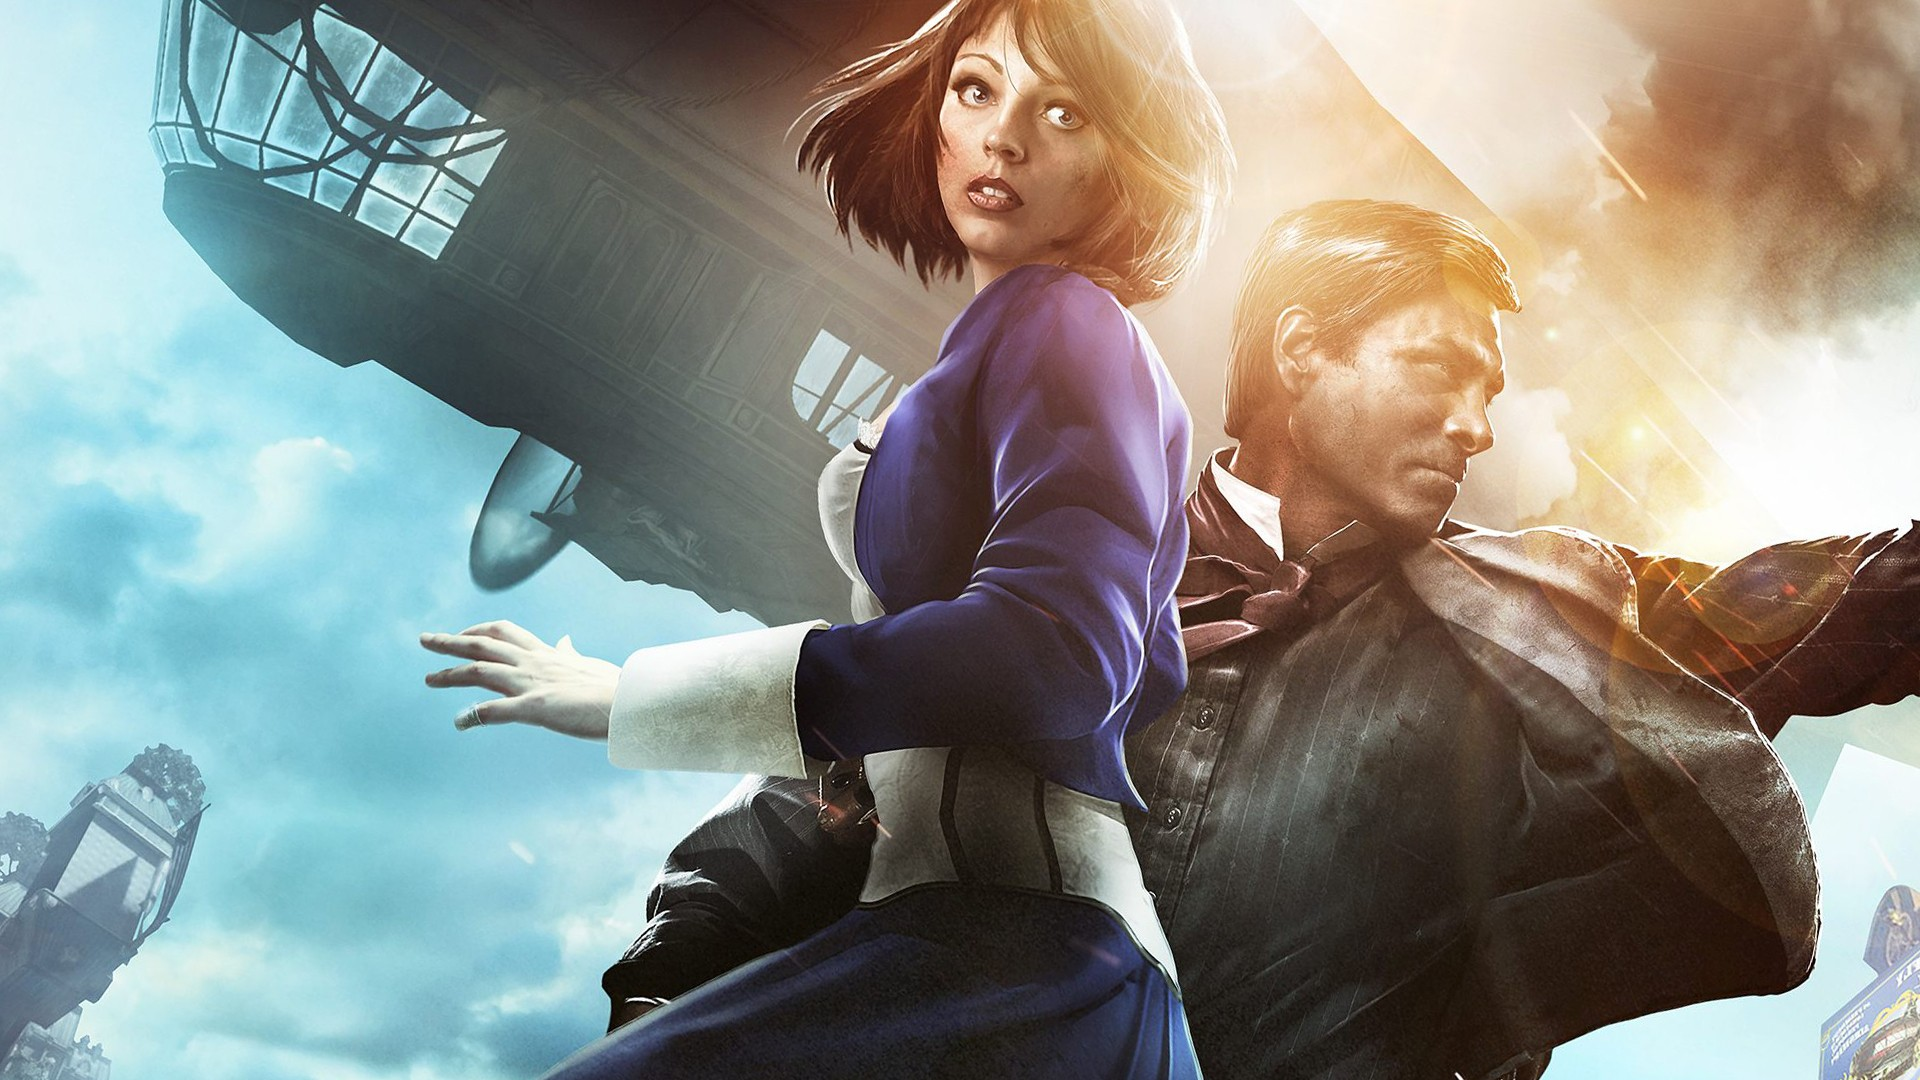 Bioshock Infinite HD Wallpaper Background Image 1920x1080 ID 1920x1080